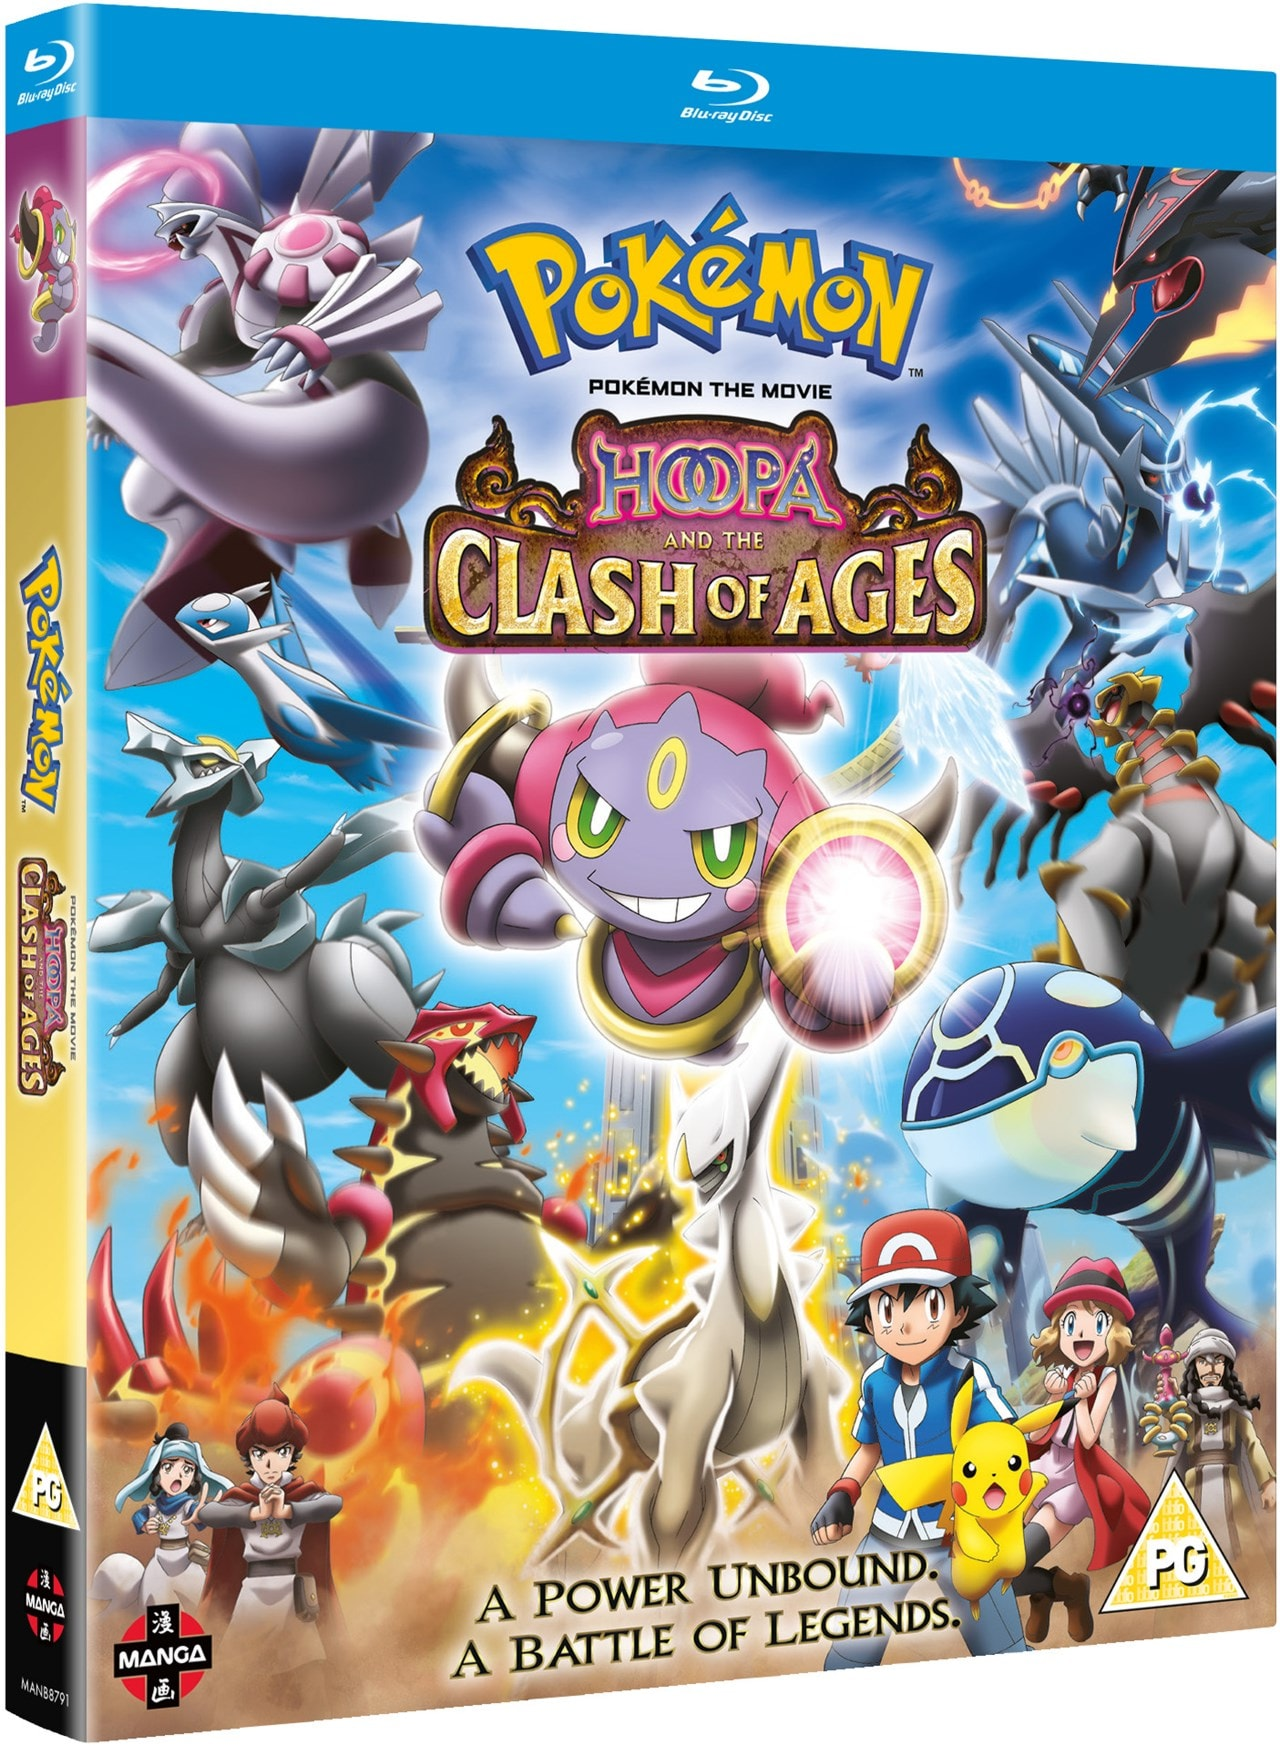 Pokemon The Movie Hoopa And The Clash Of Ages Blu Ray Free Shipping Over 20 Hmv Store